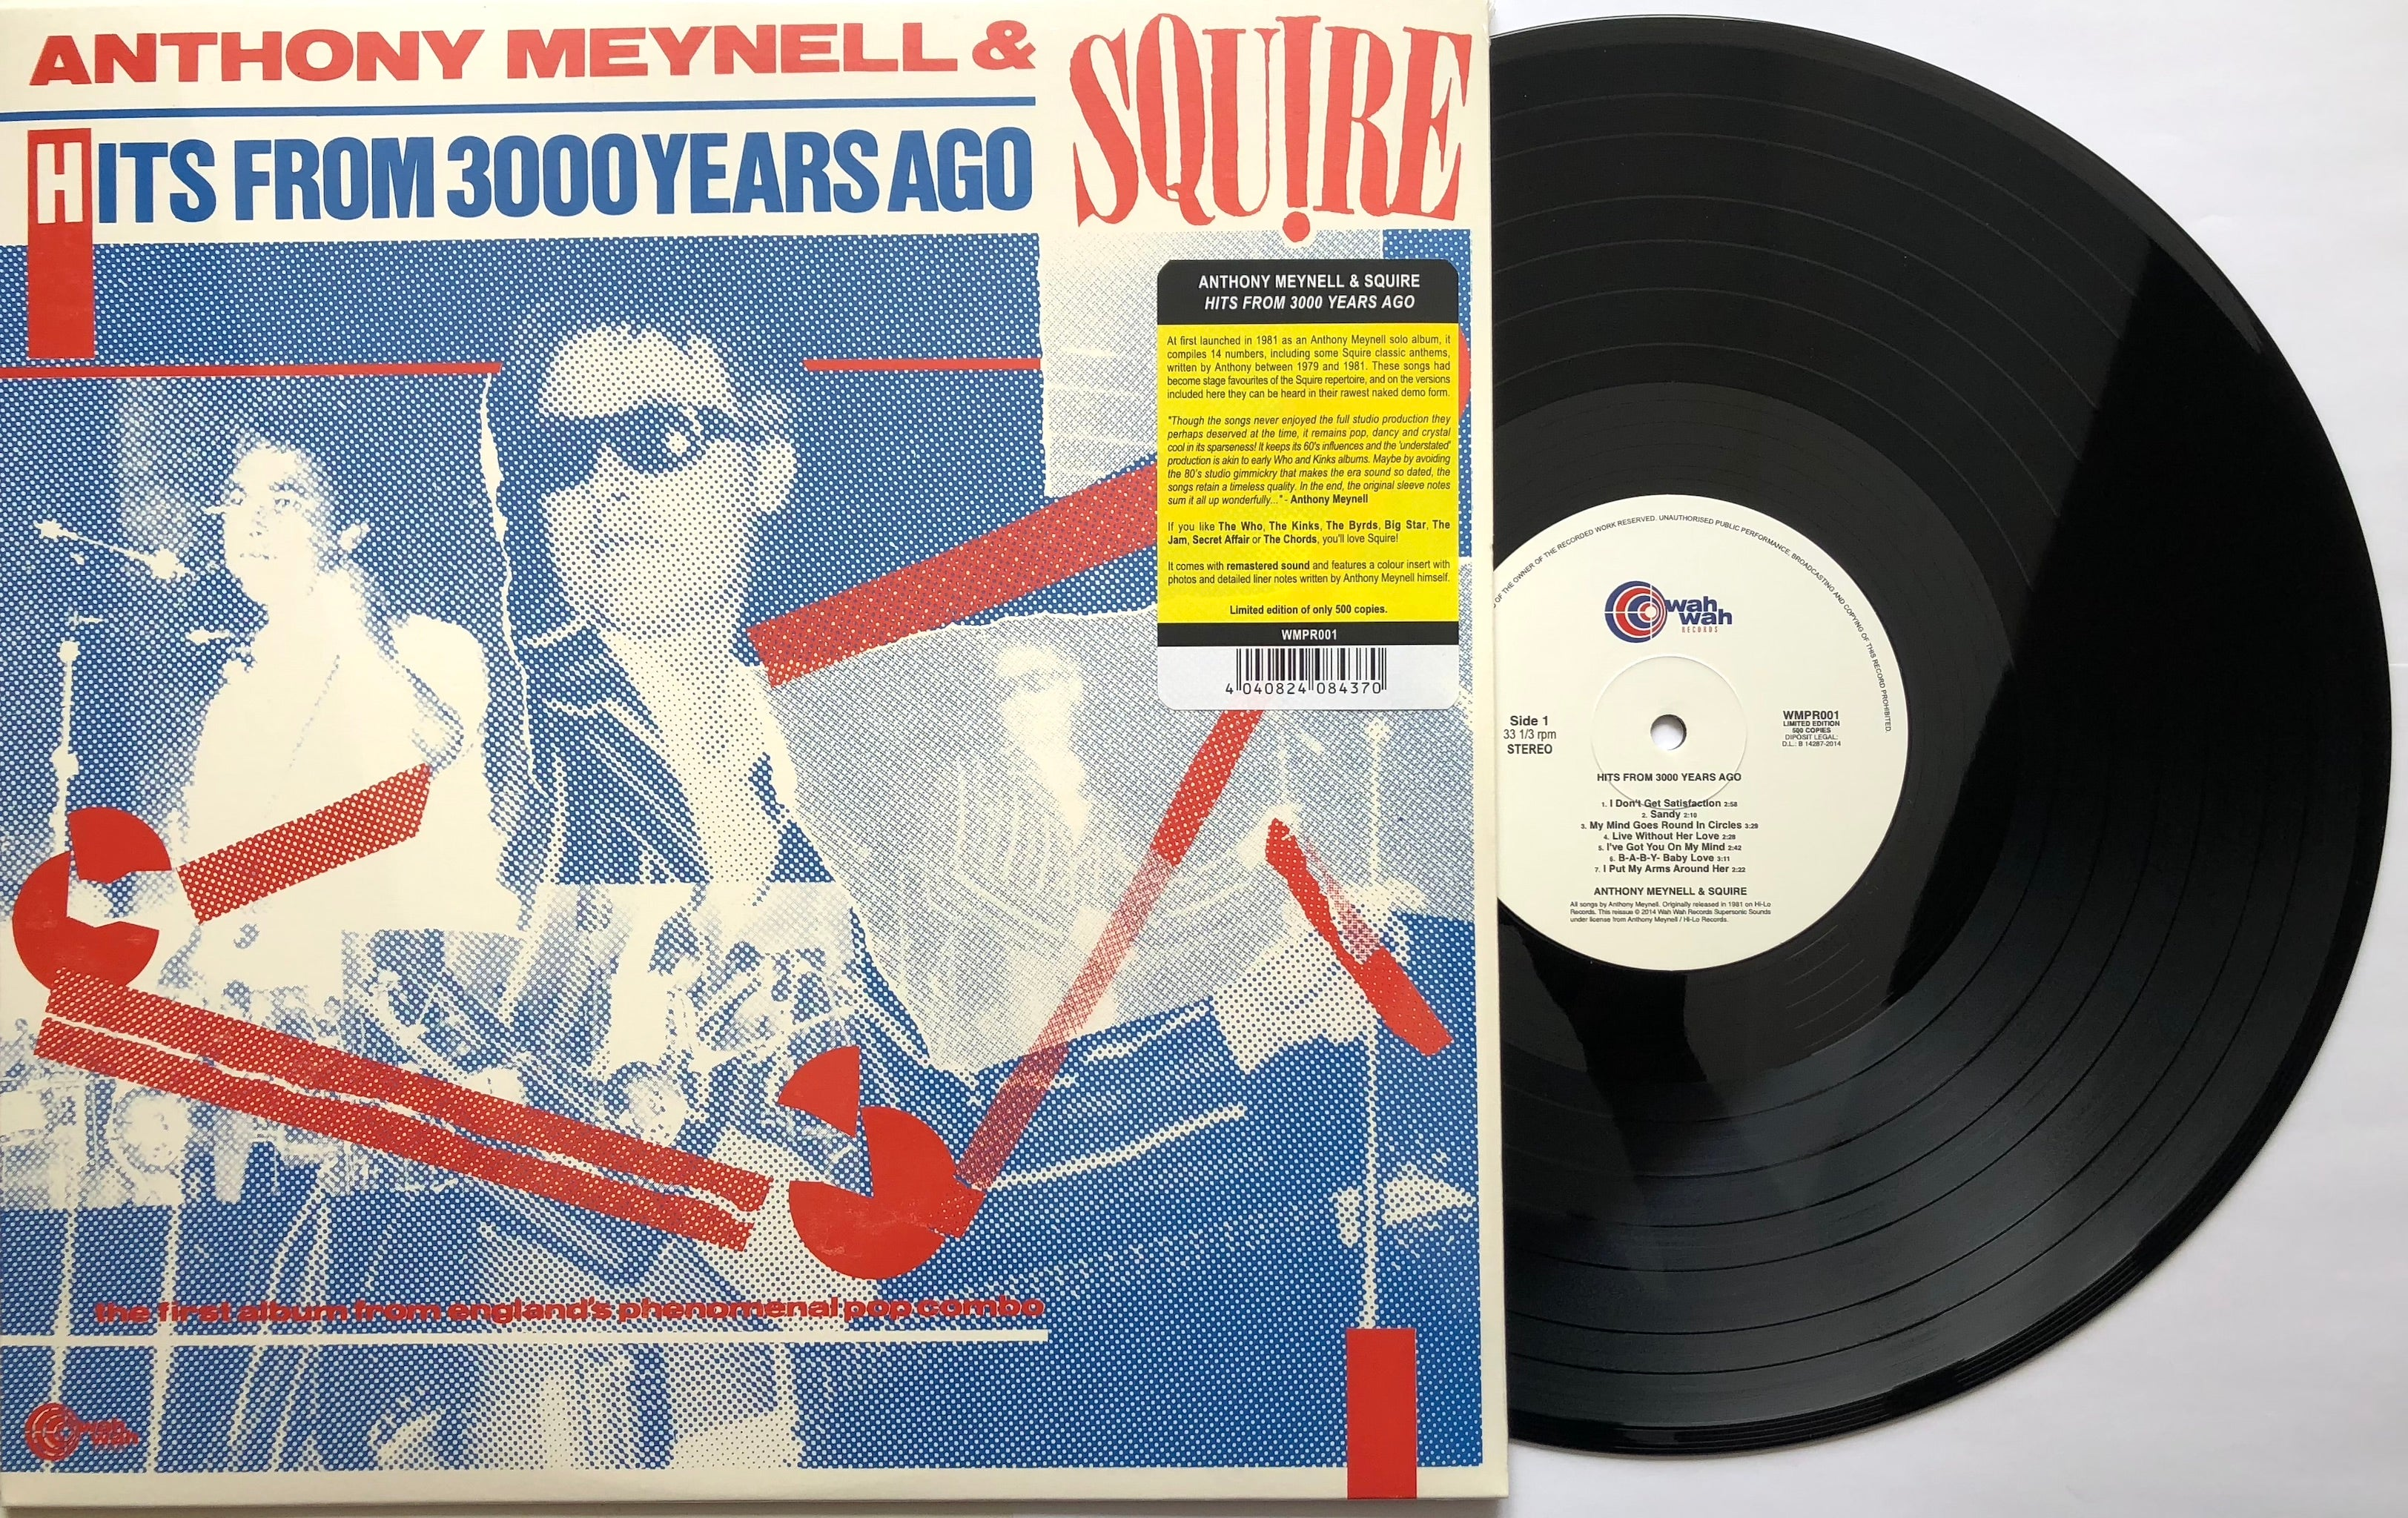 Squire -  Hits From 3000 Years Ago - with special insert